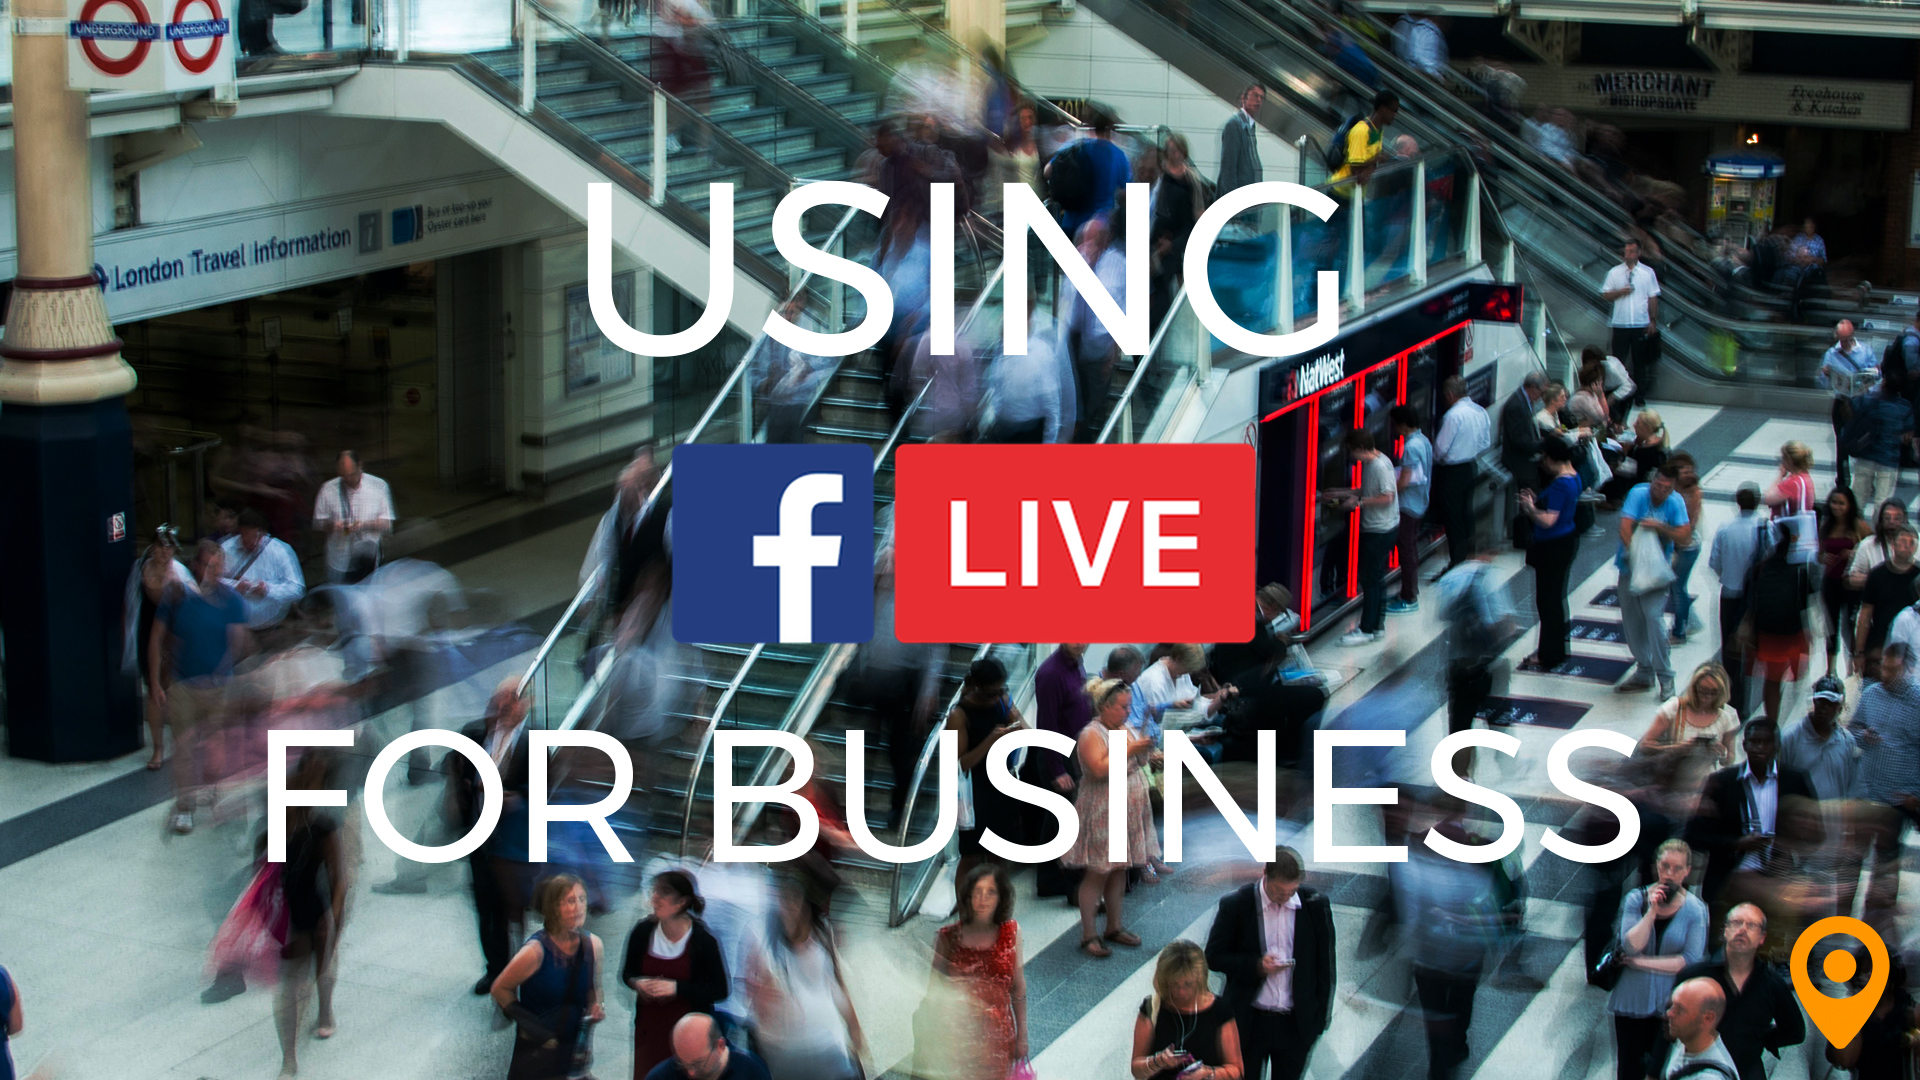 Using Facebook Live for Business